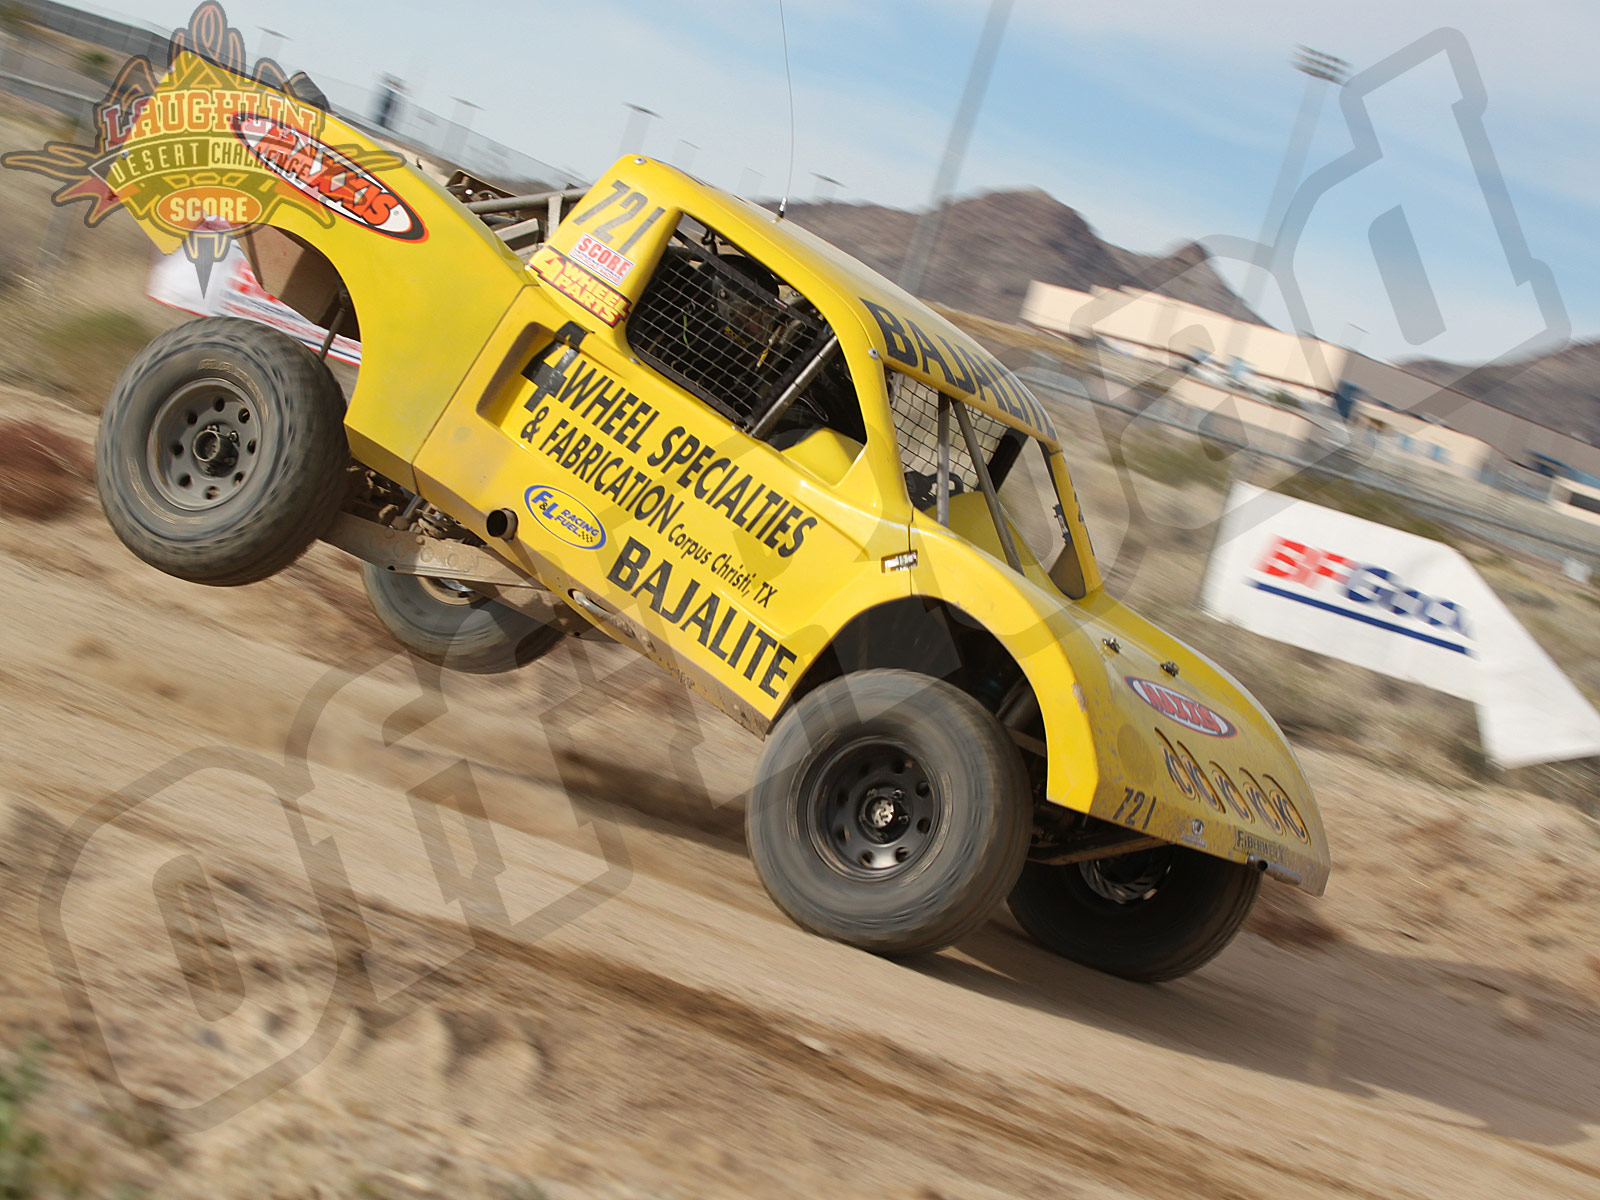 012011or 6643+2011 score laughlin desert challenge+truck classes